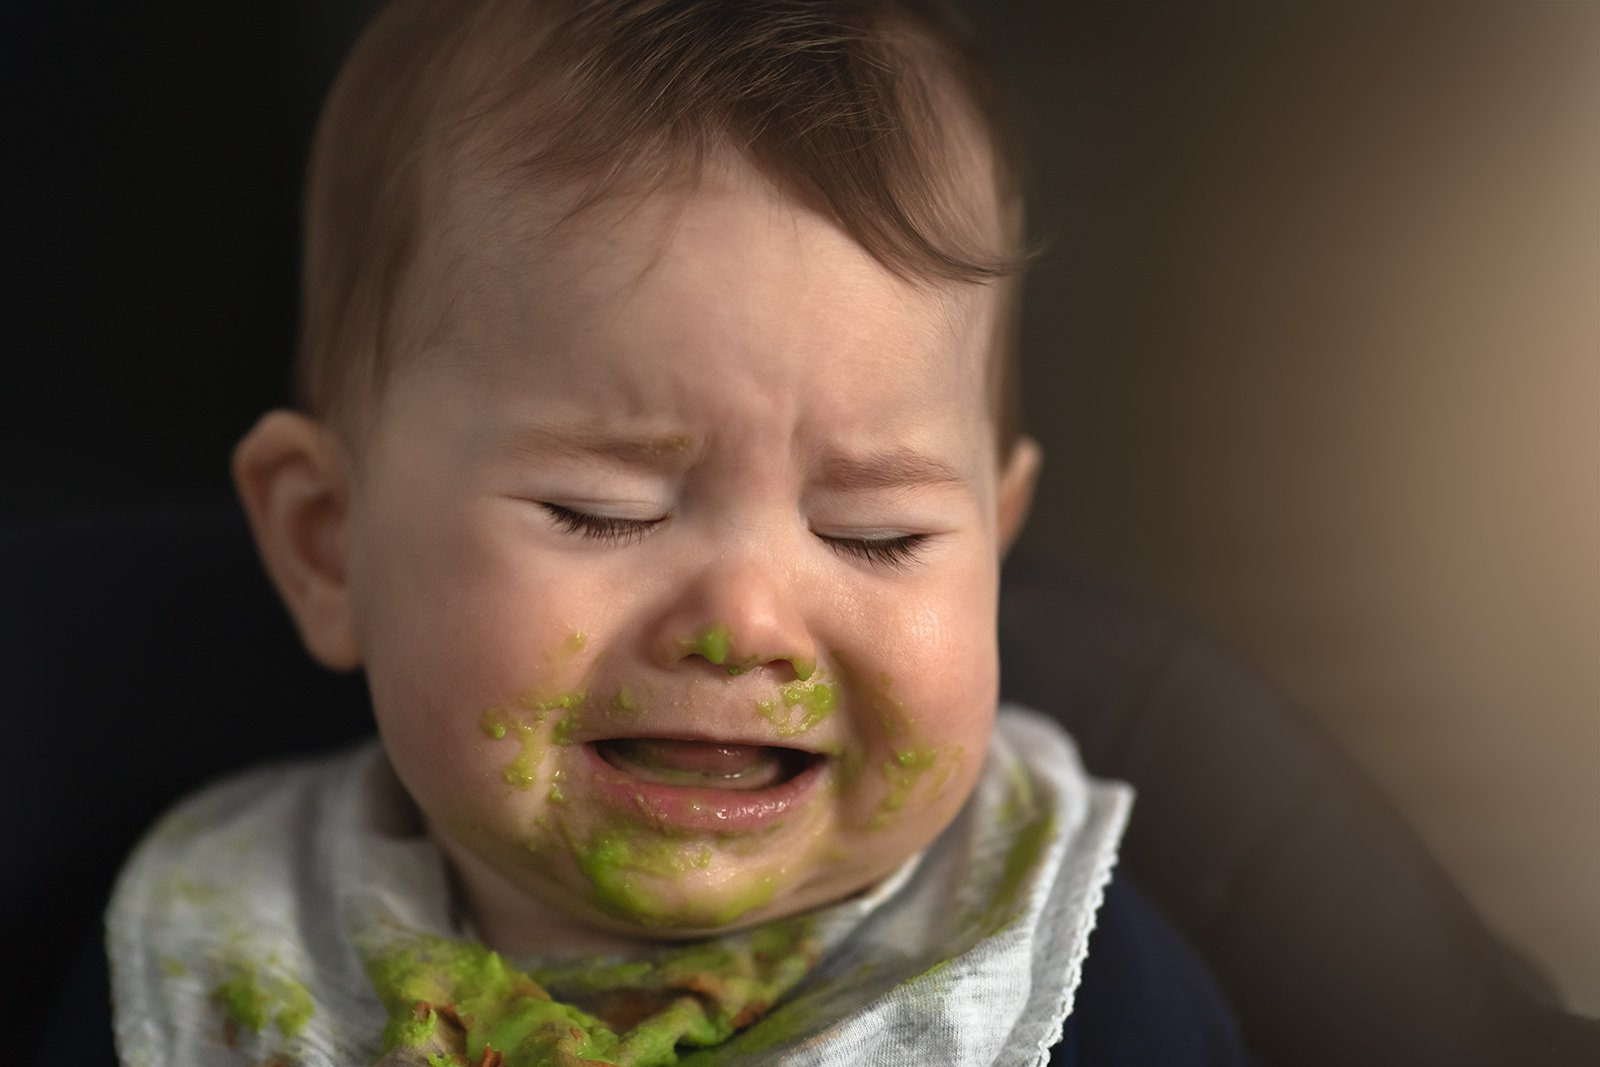 Erin Reinholtz_thisgirlnamederin clickin moms march forum photo contest baby with green food all over face